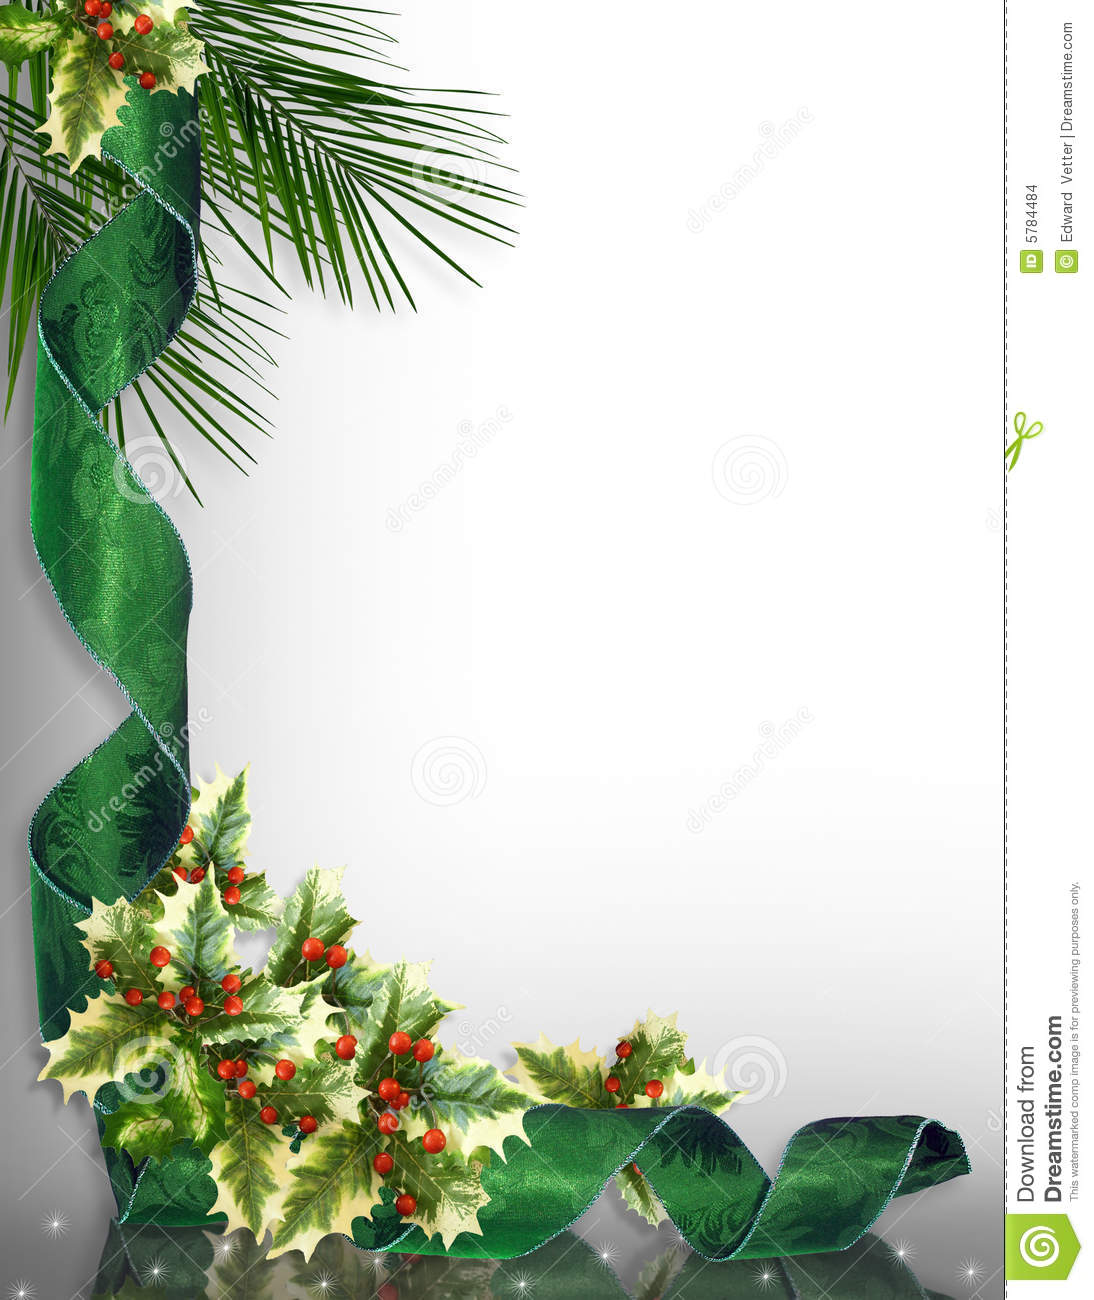 Christmas Card Borders Png | Search Results | Calendar 2015